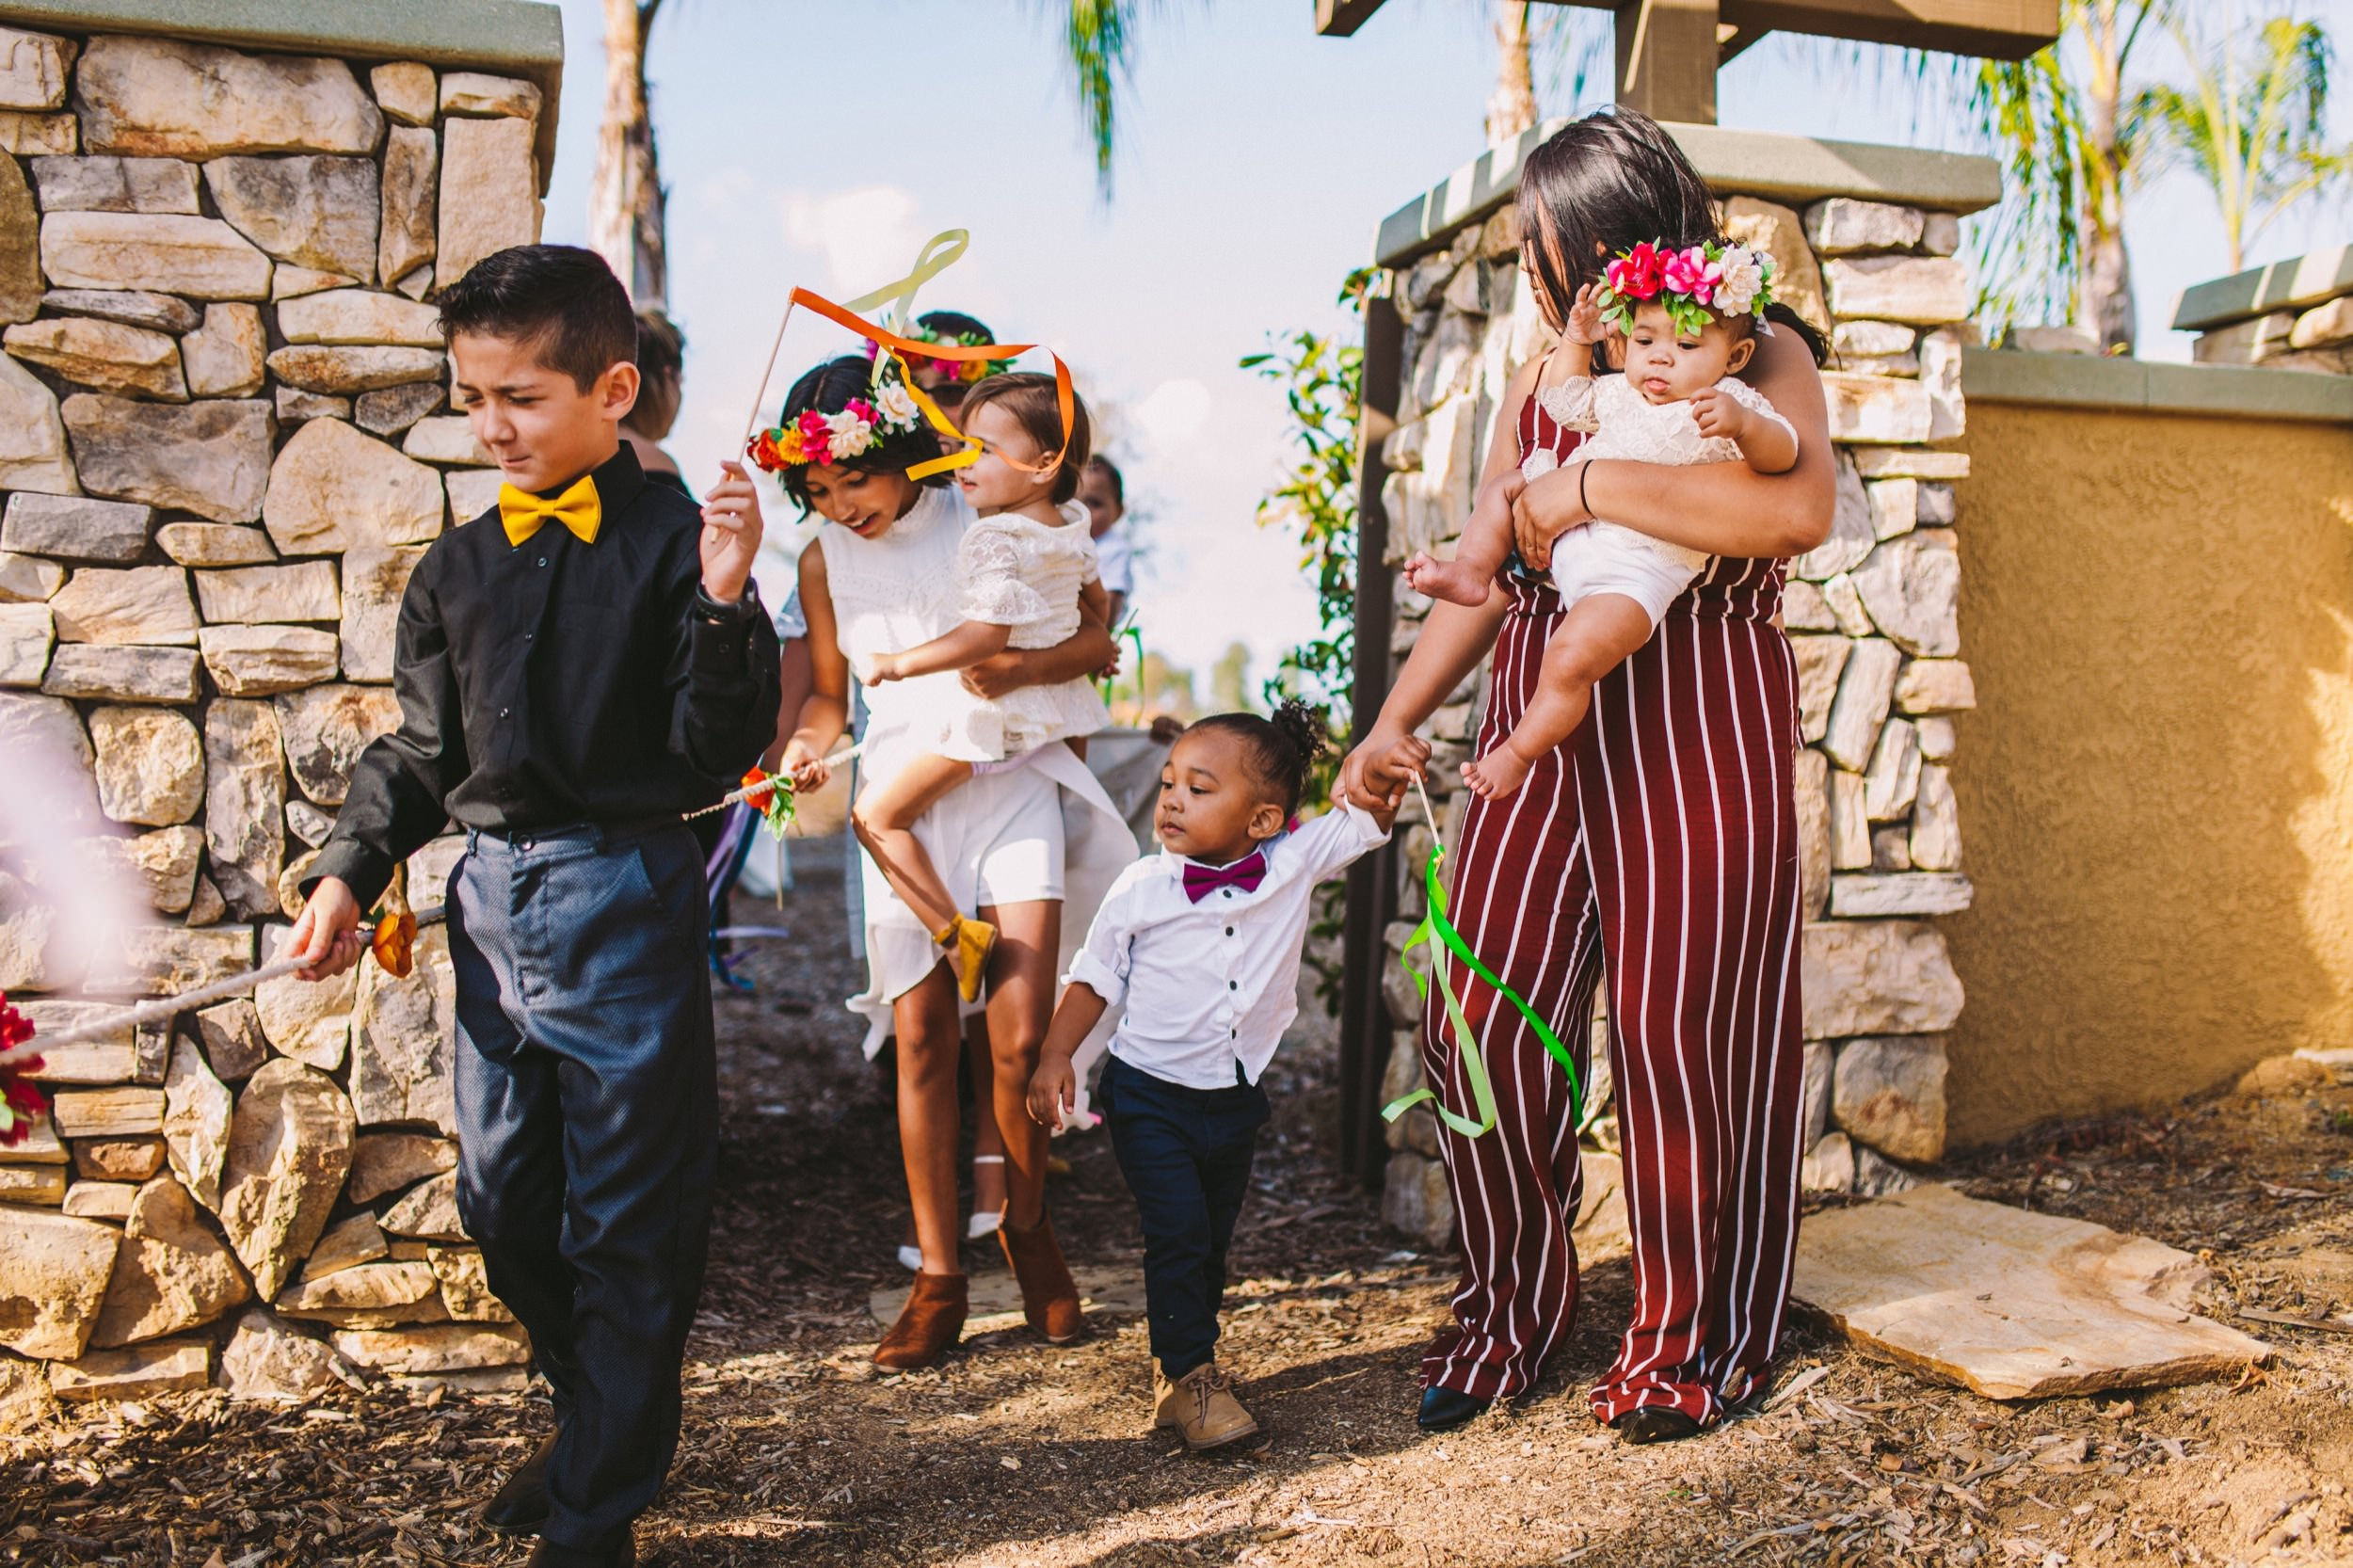 Intimate, Relaxed & Colorful Wedding Photography in Temecula-105.jpg